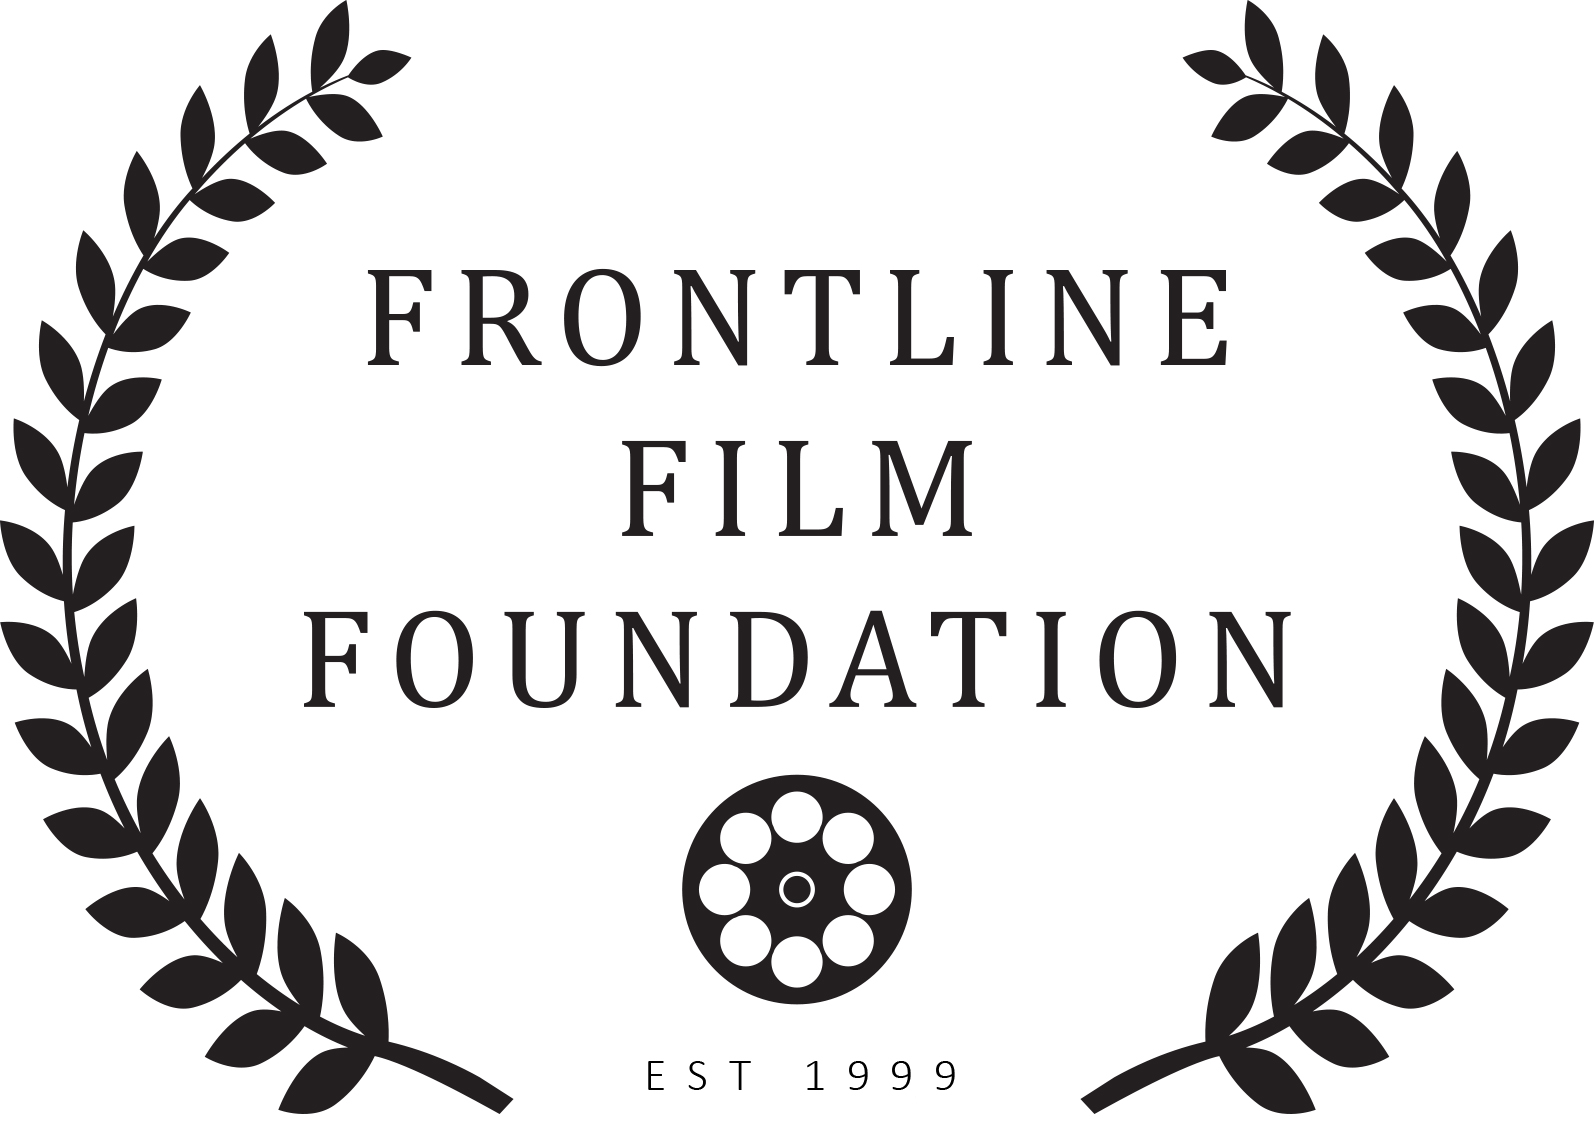 Frontline Film Foundation